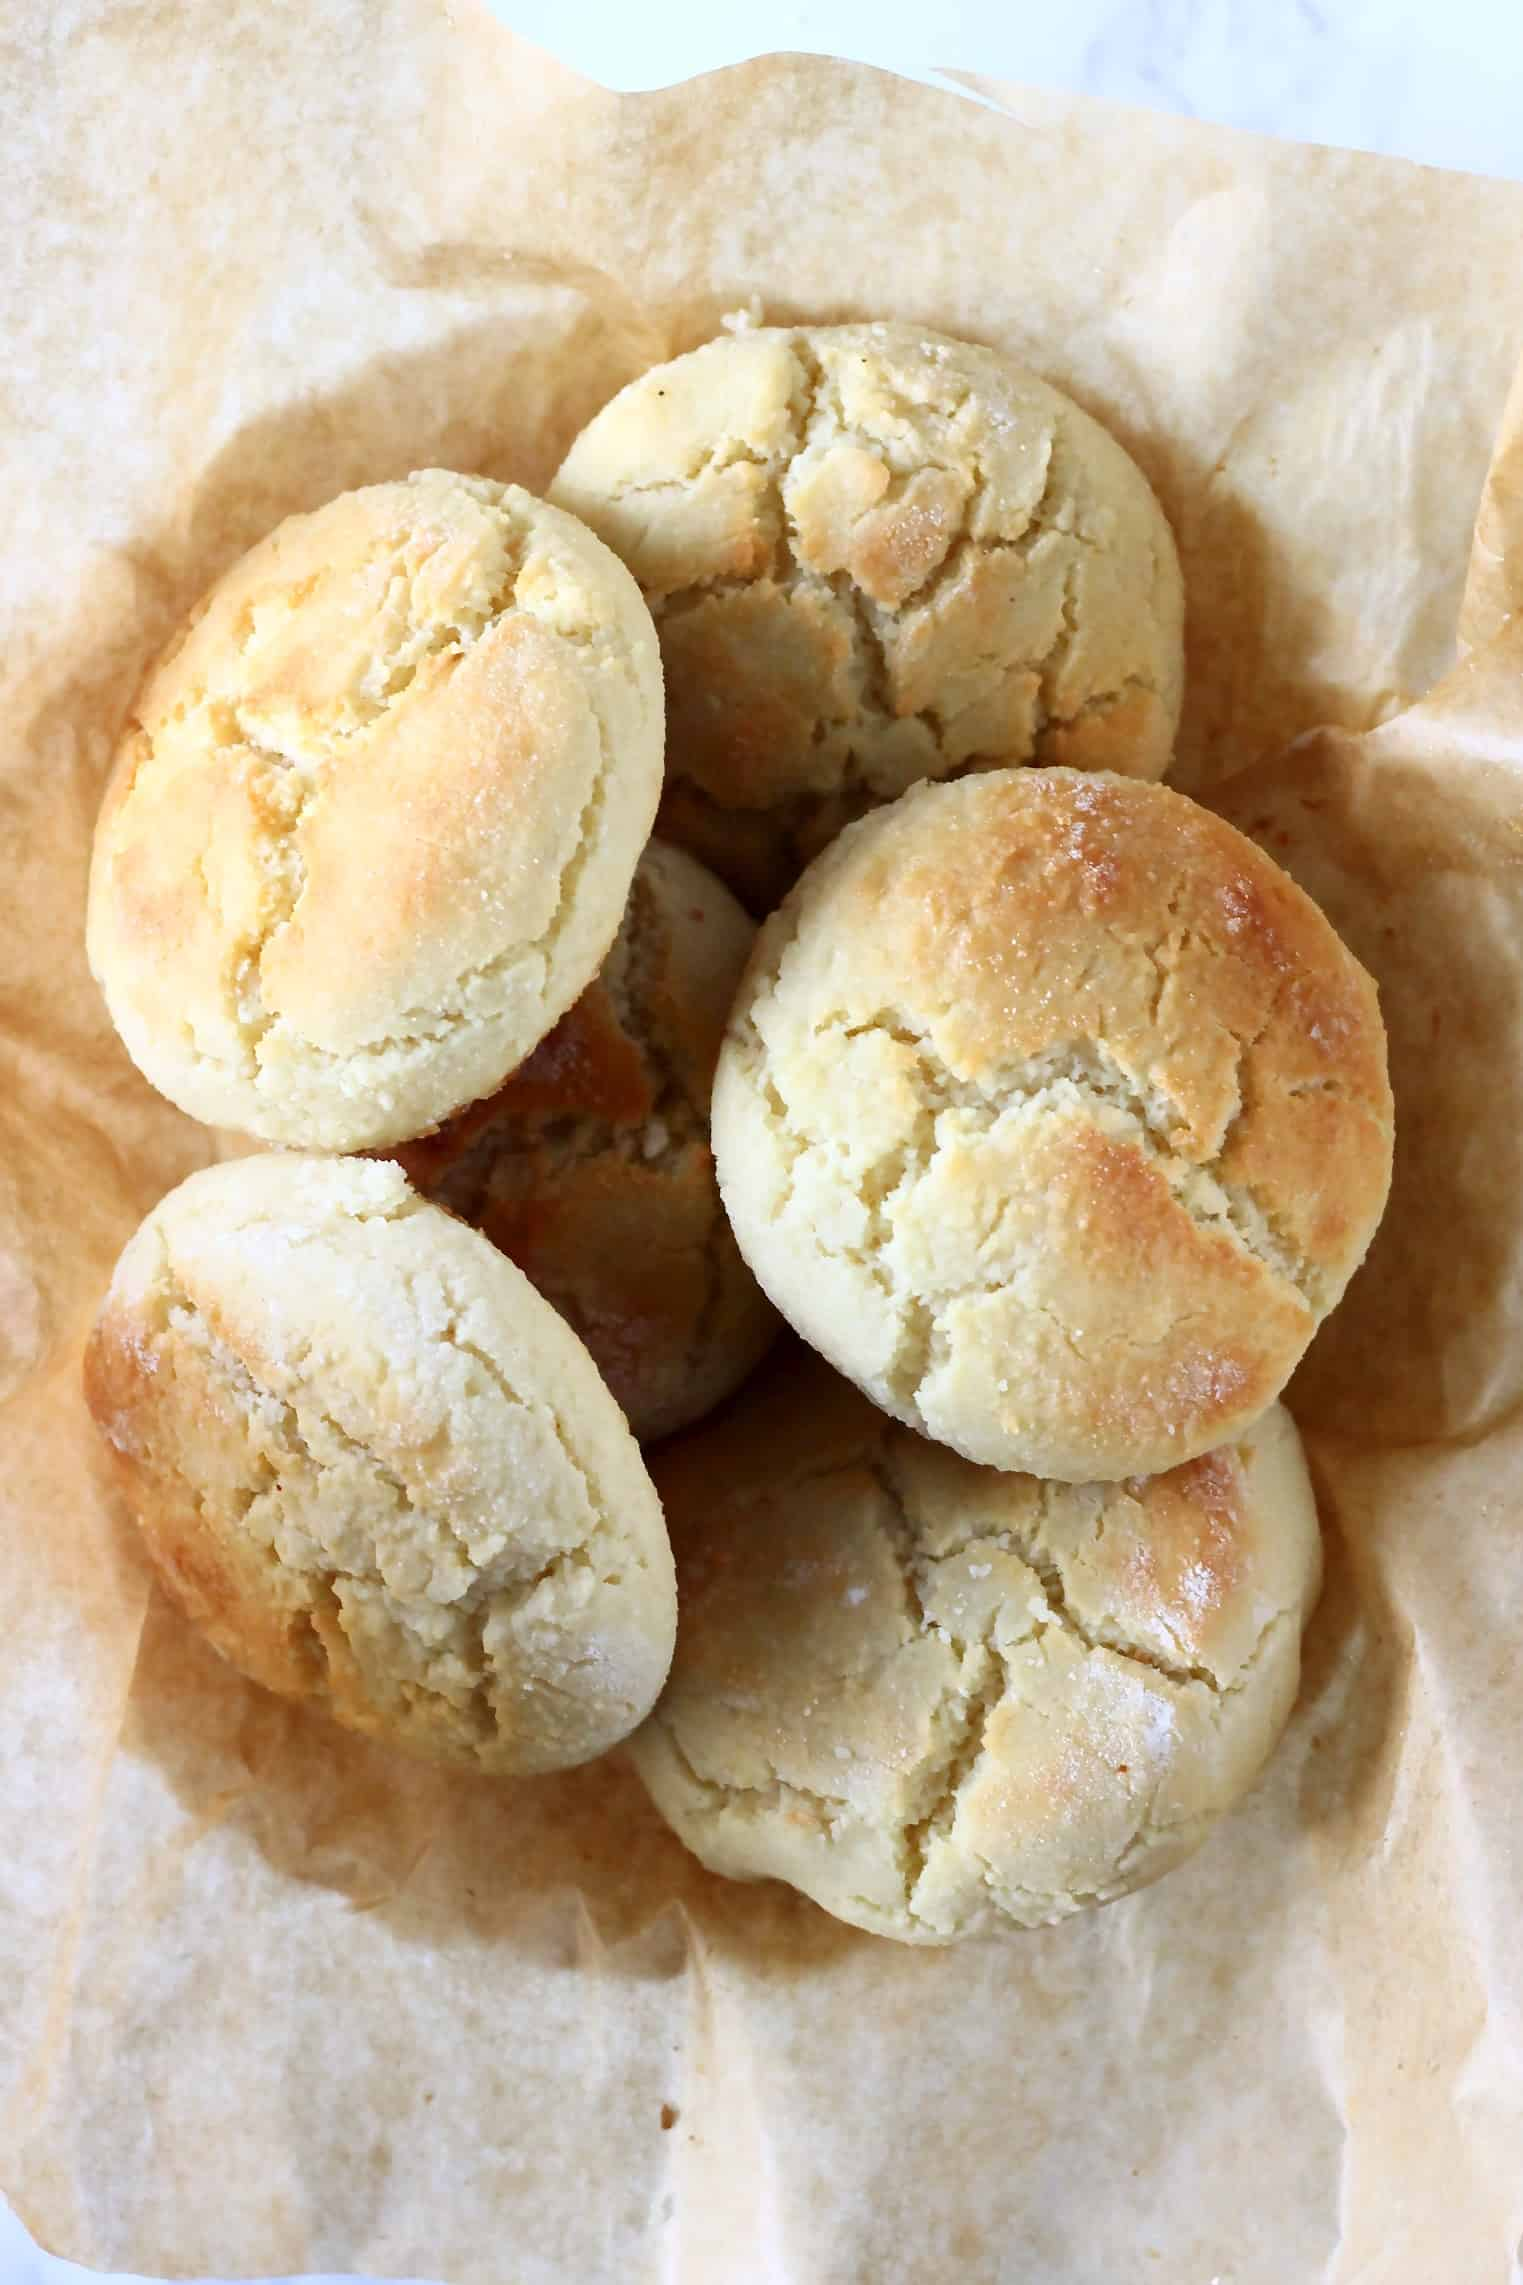 Six gluten-free vegan biscuits in a bowl lined with brown baking paper